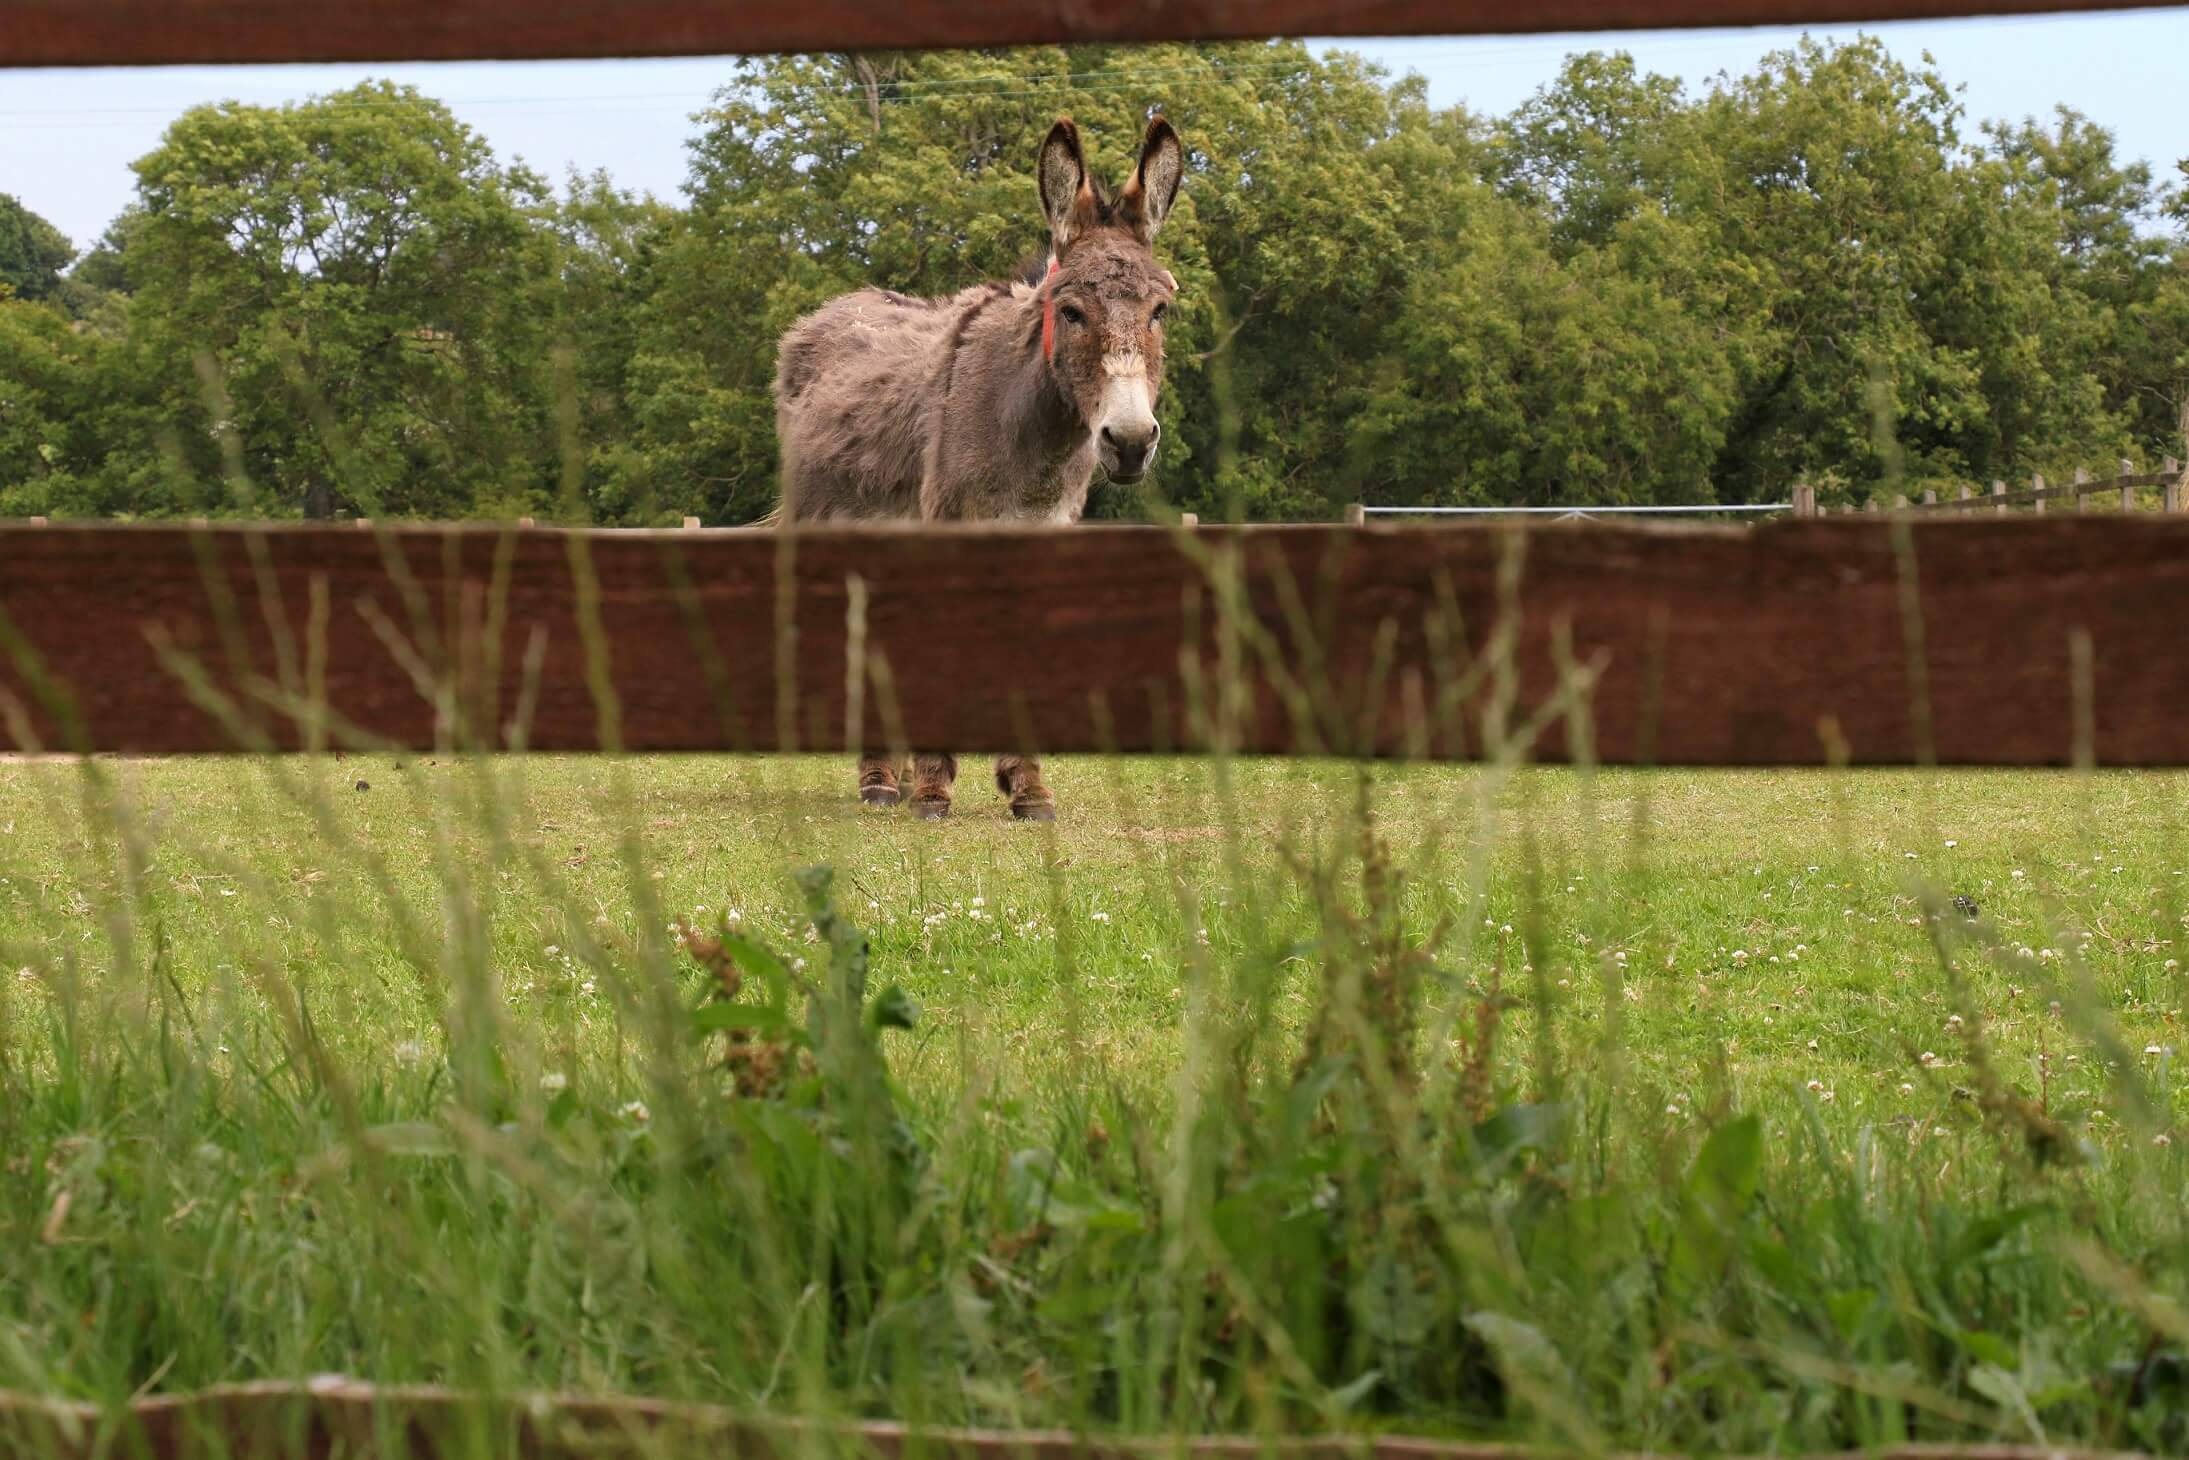 Pictures: The Donkey Sanctuary Sidmouth